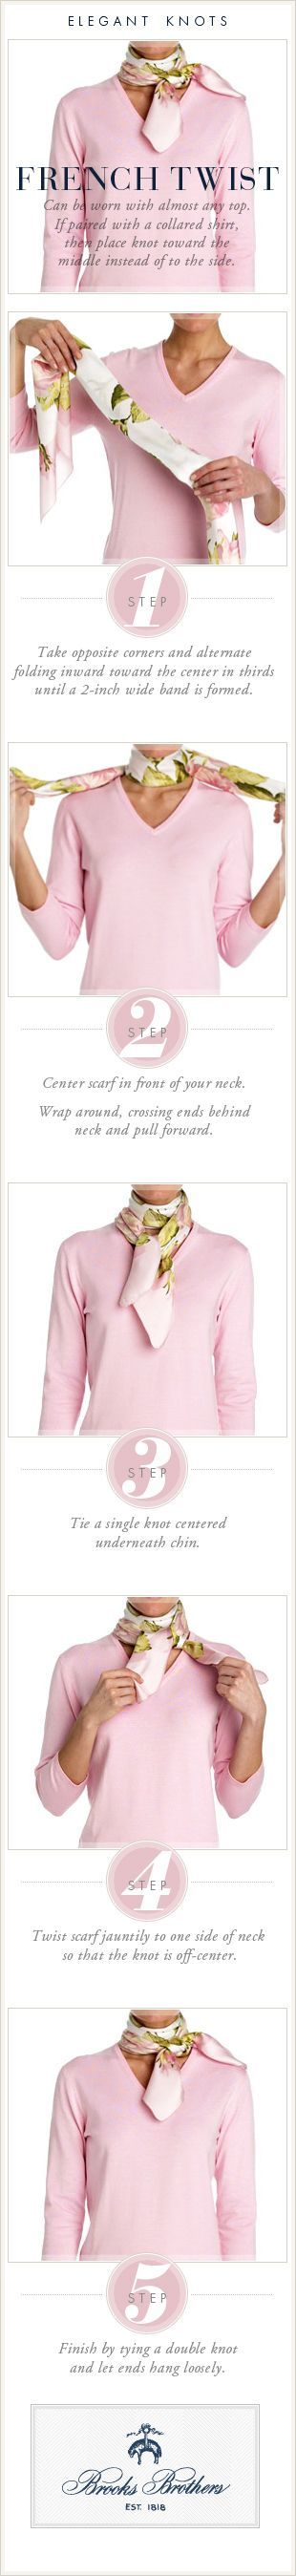 cool French Twist for scarves.And,if the scarf is Hermes,you need to know how to say ... by http://www.danafashiontrends.us/french-fashion/french-twist-for-scarves-andif-the-scarf-is-hermesyou-need-to-know-how-to-say/